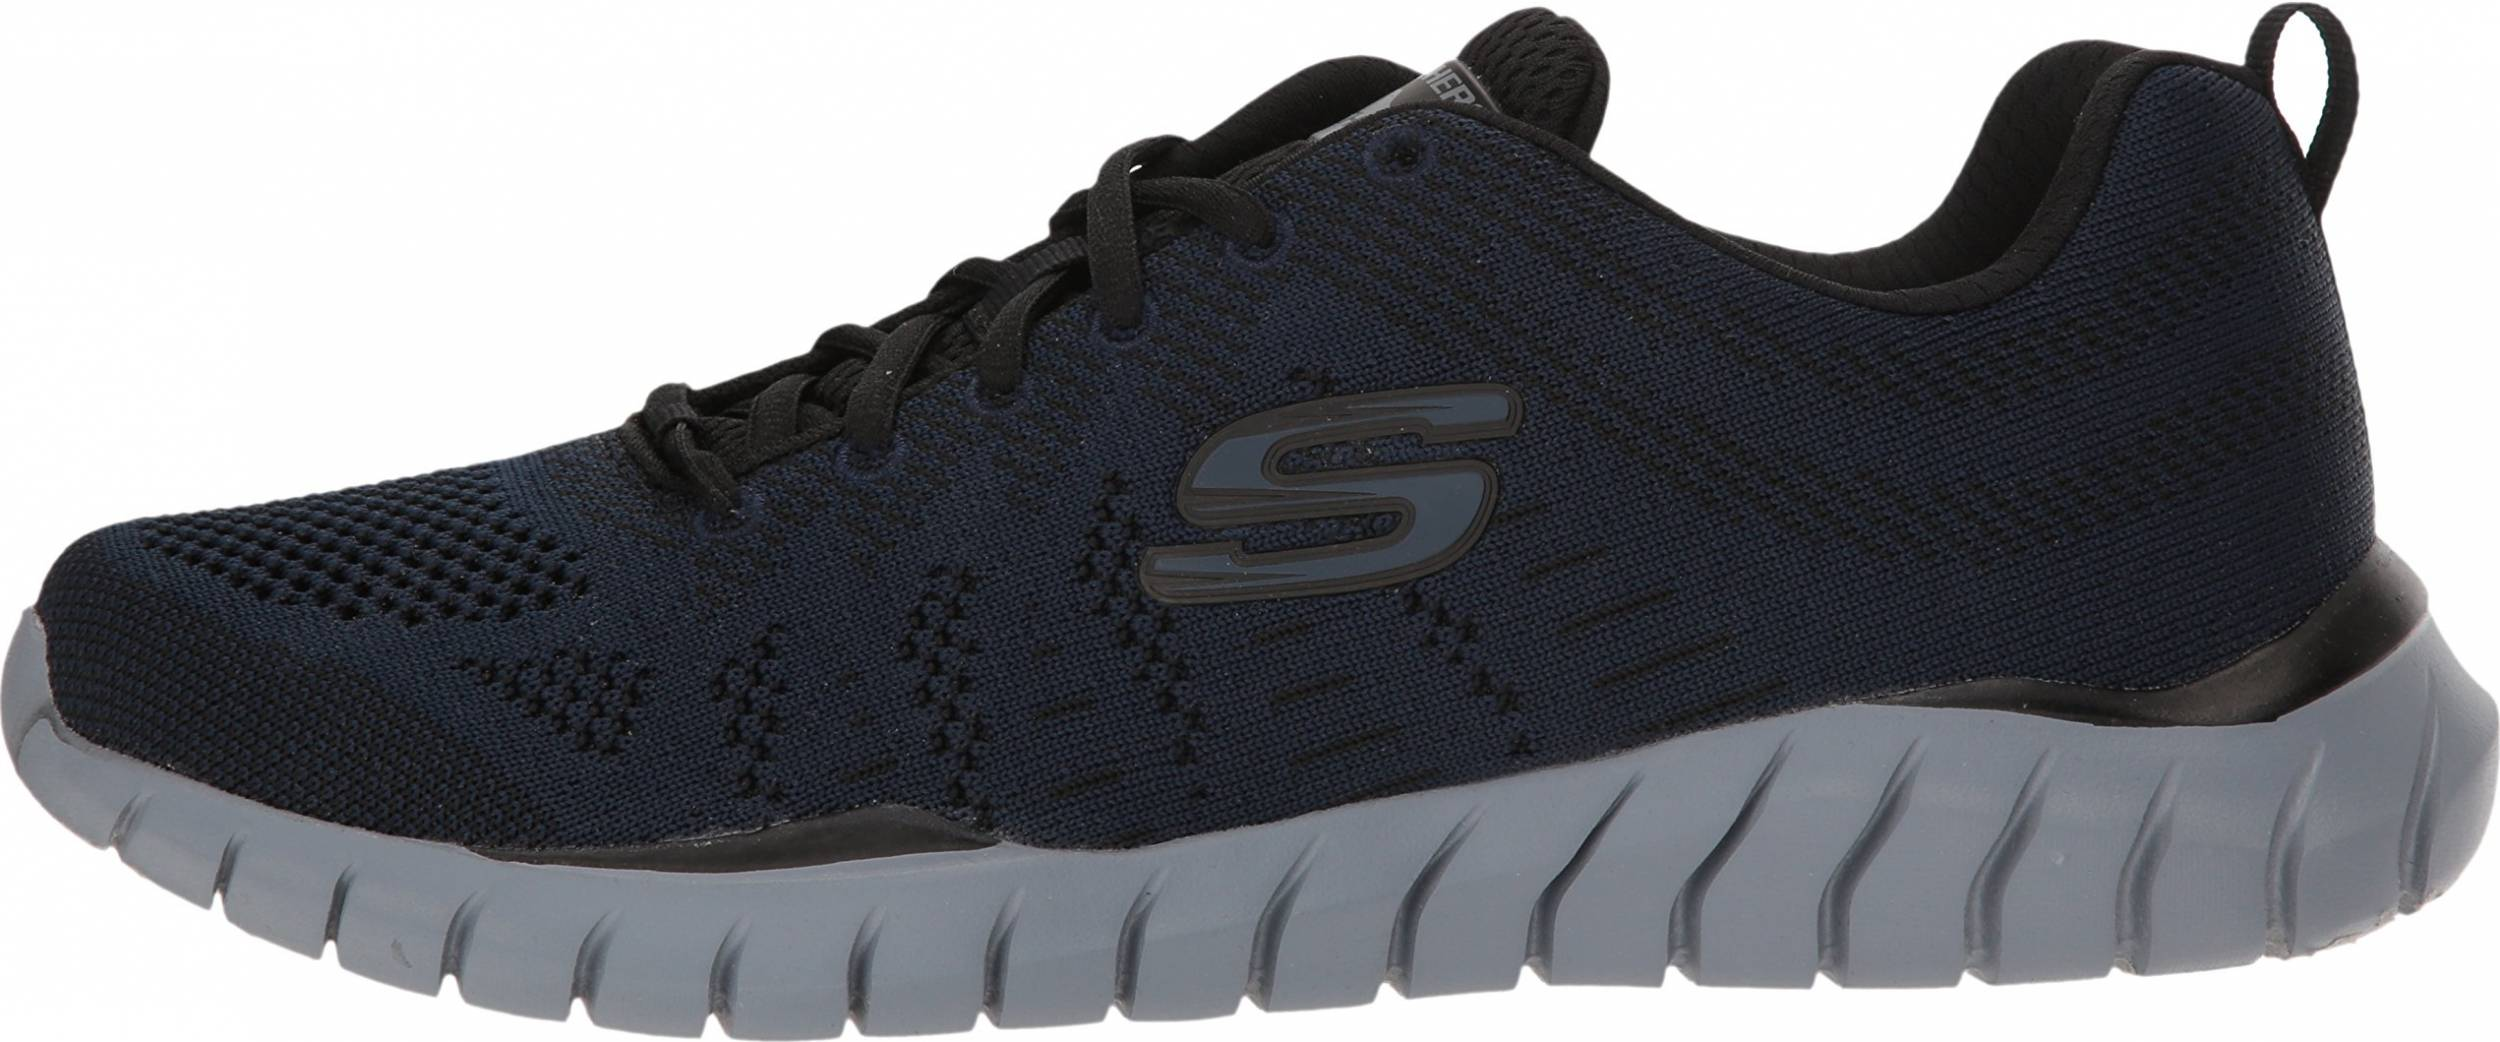 Save 40% on Cheap Workout Shoes (34